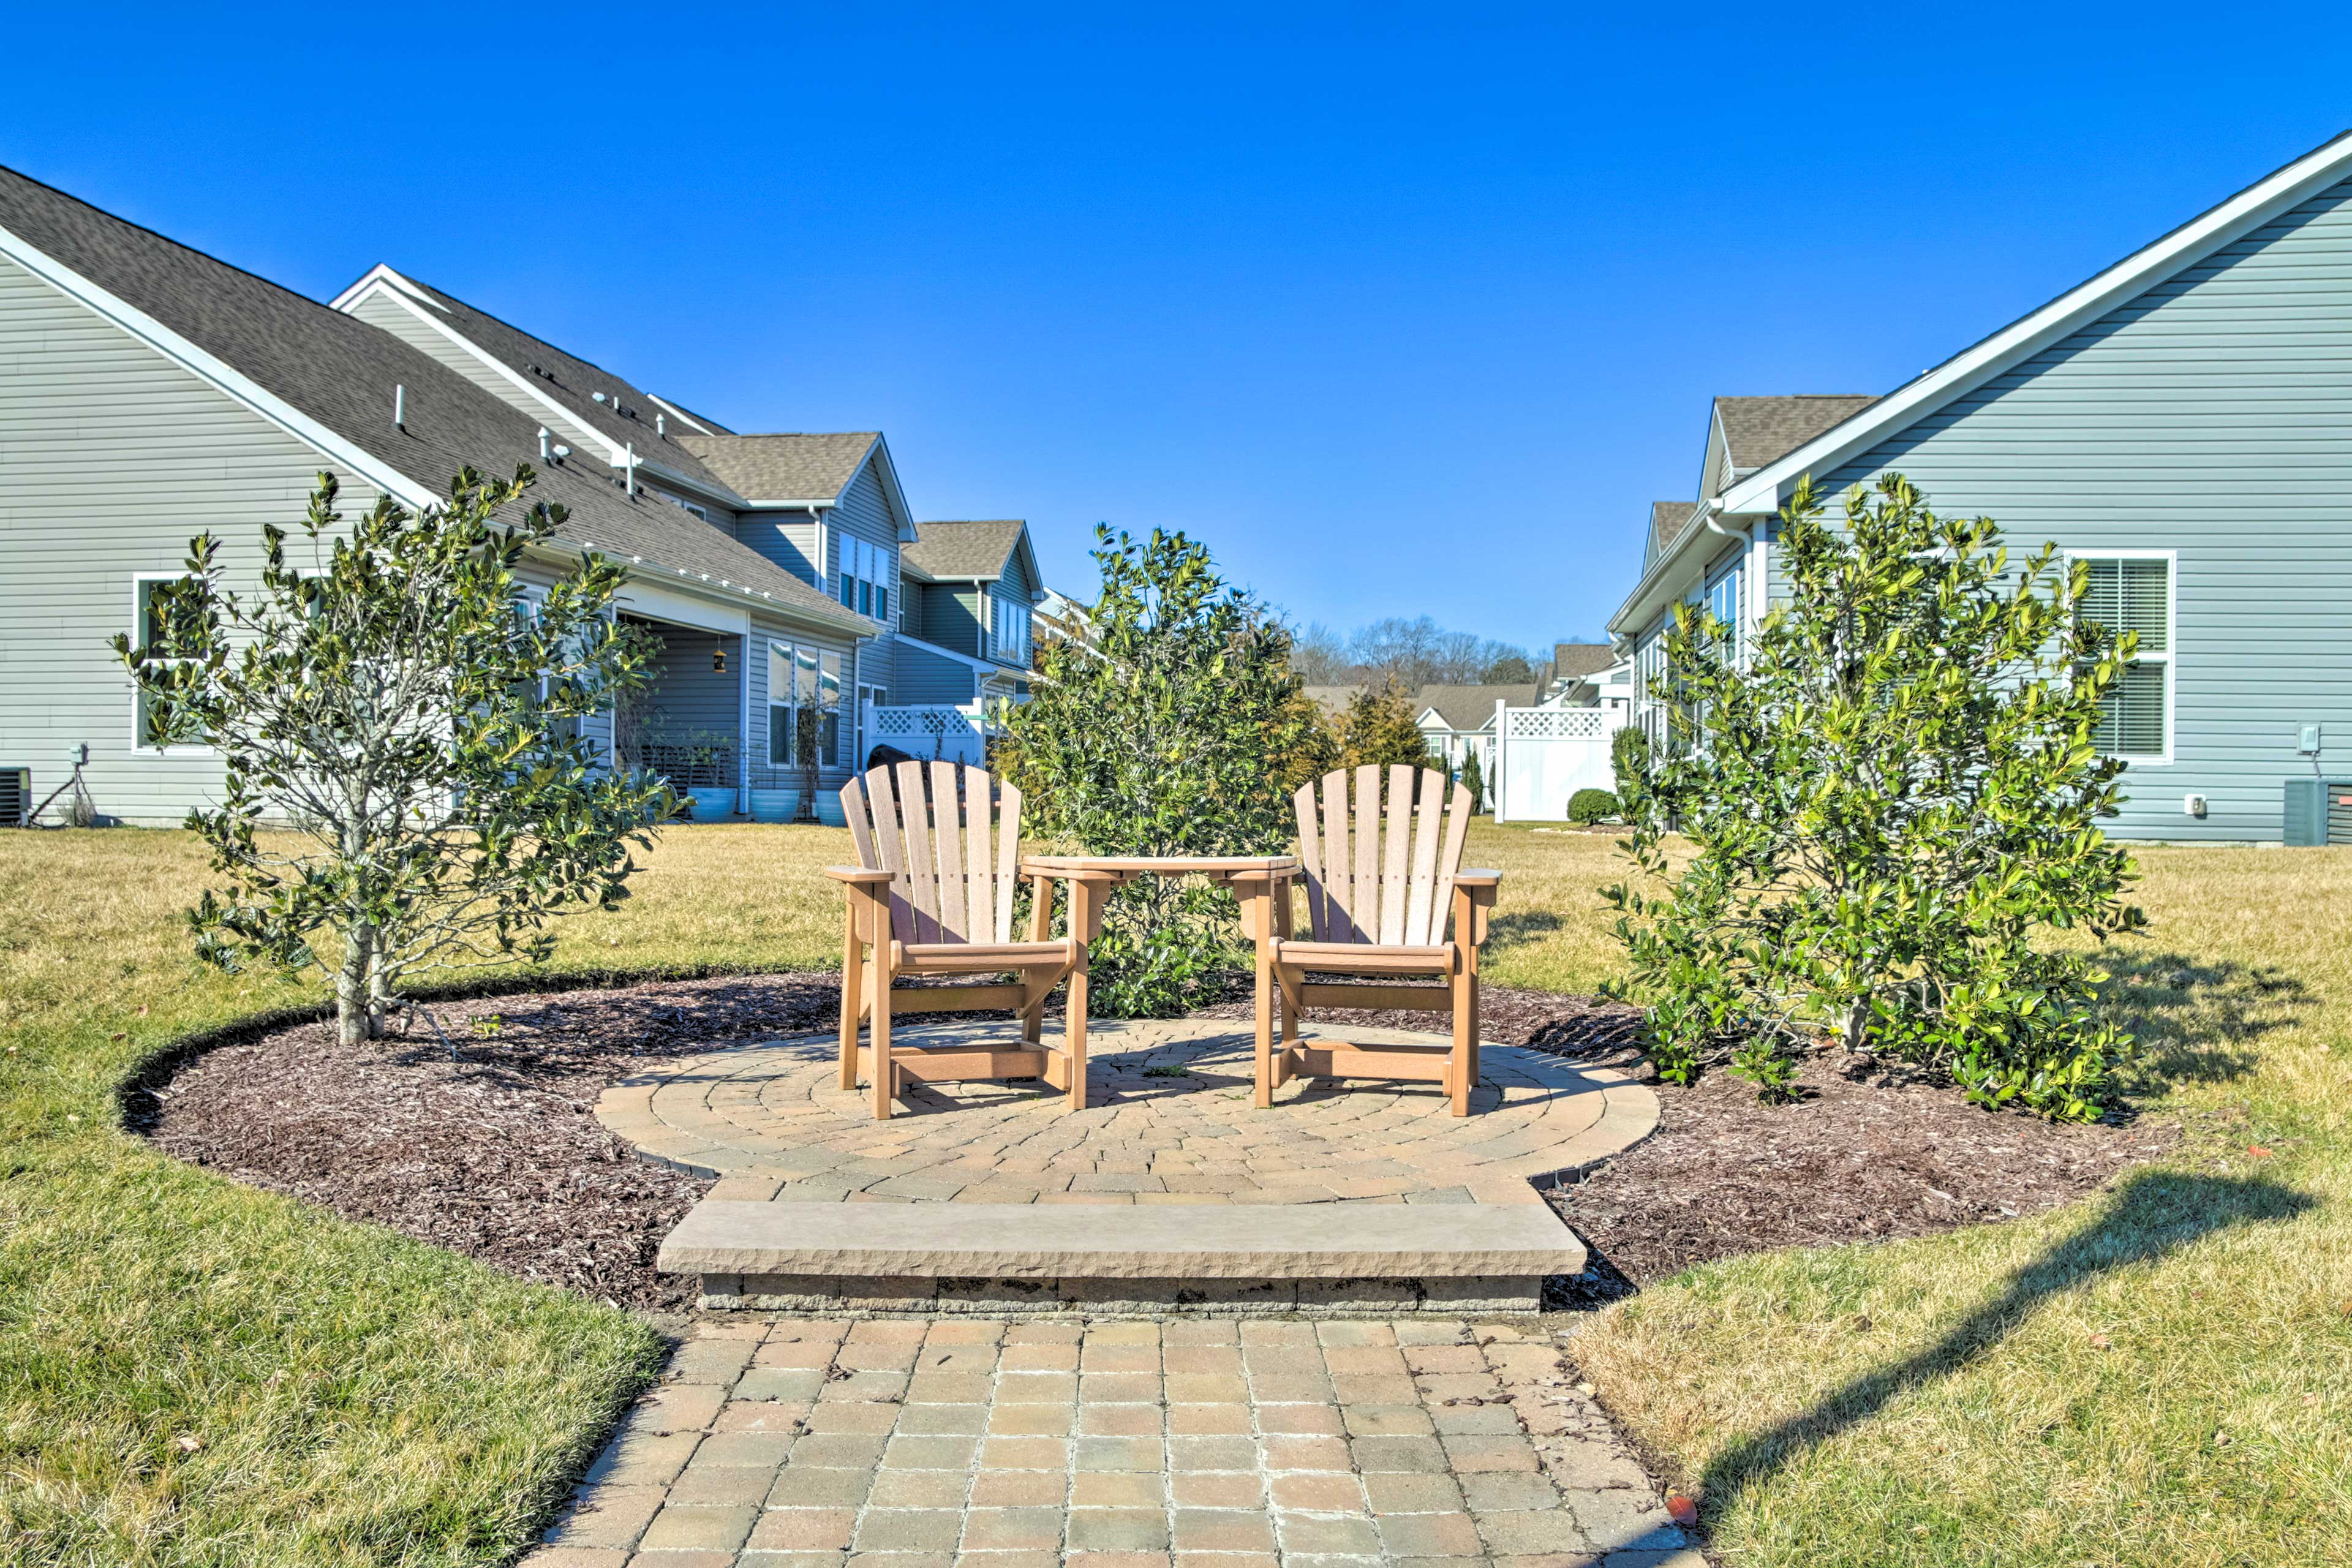 Soak up the sun from the Adirondack chairs.